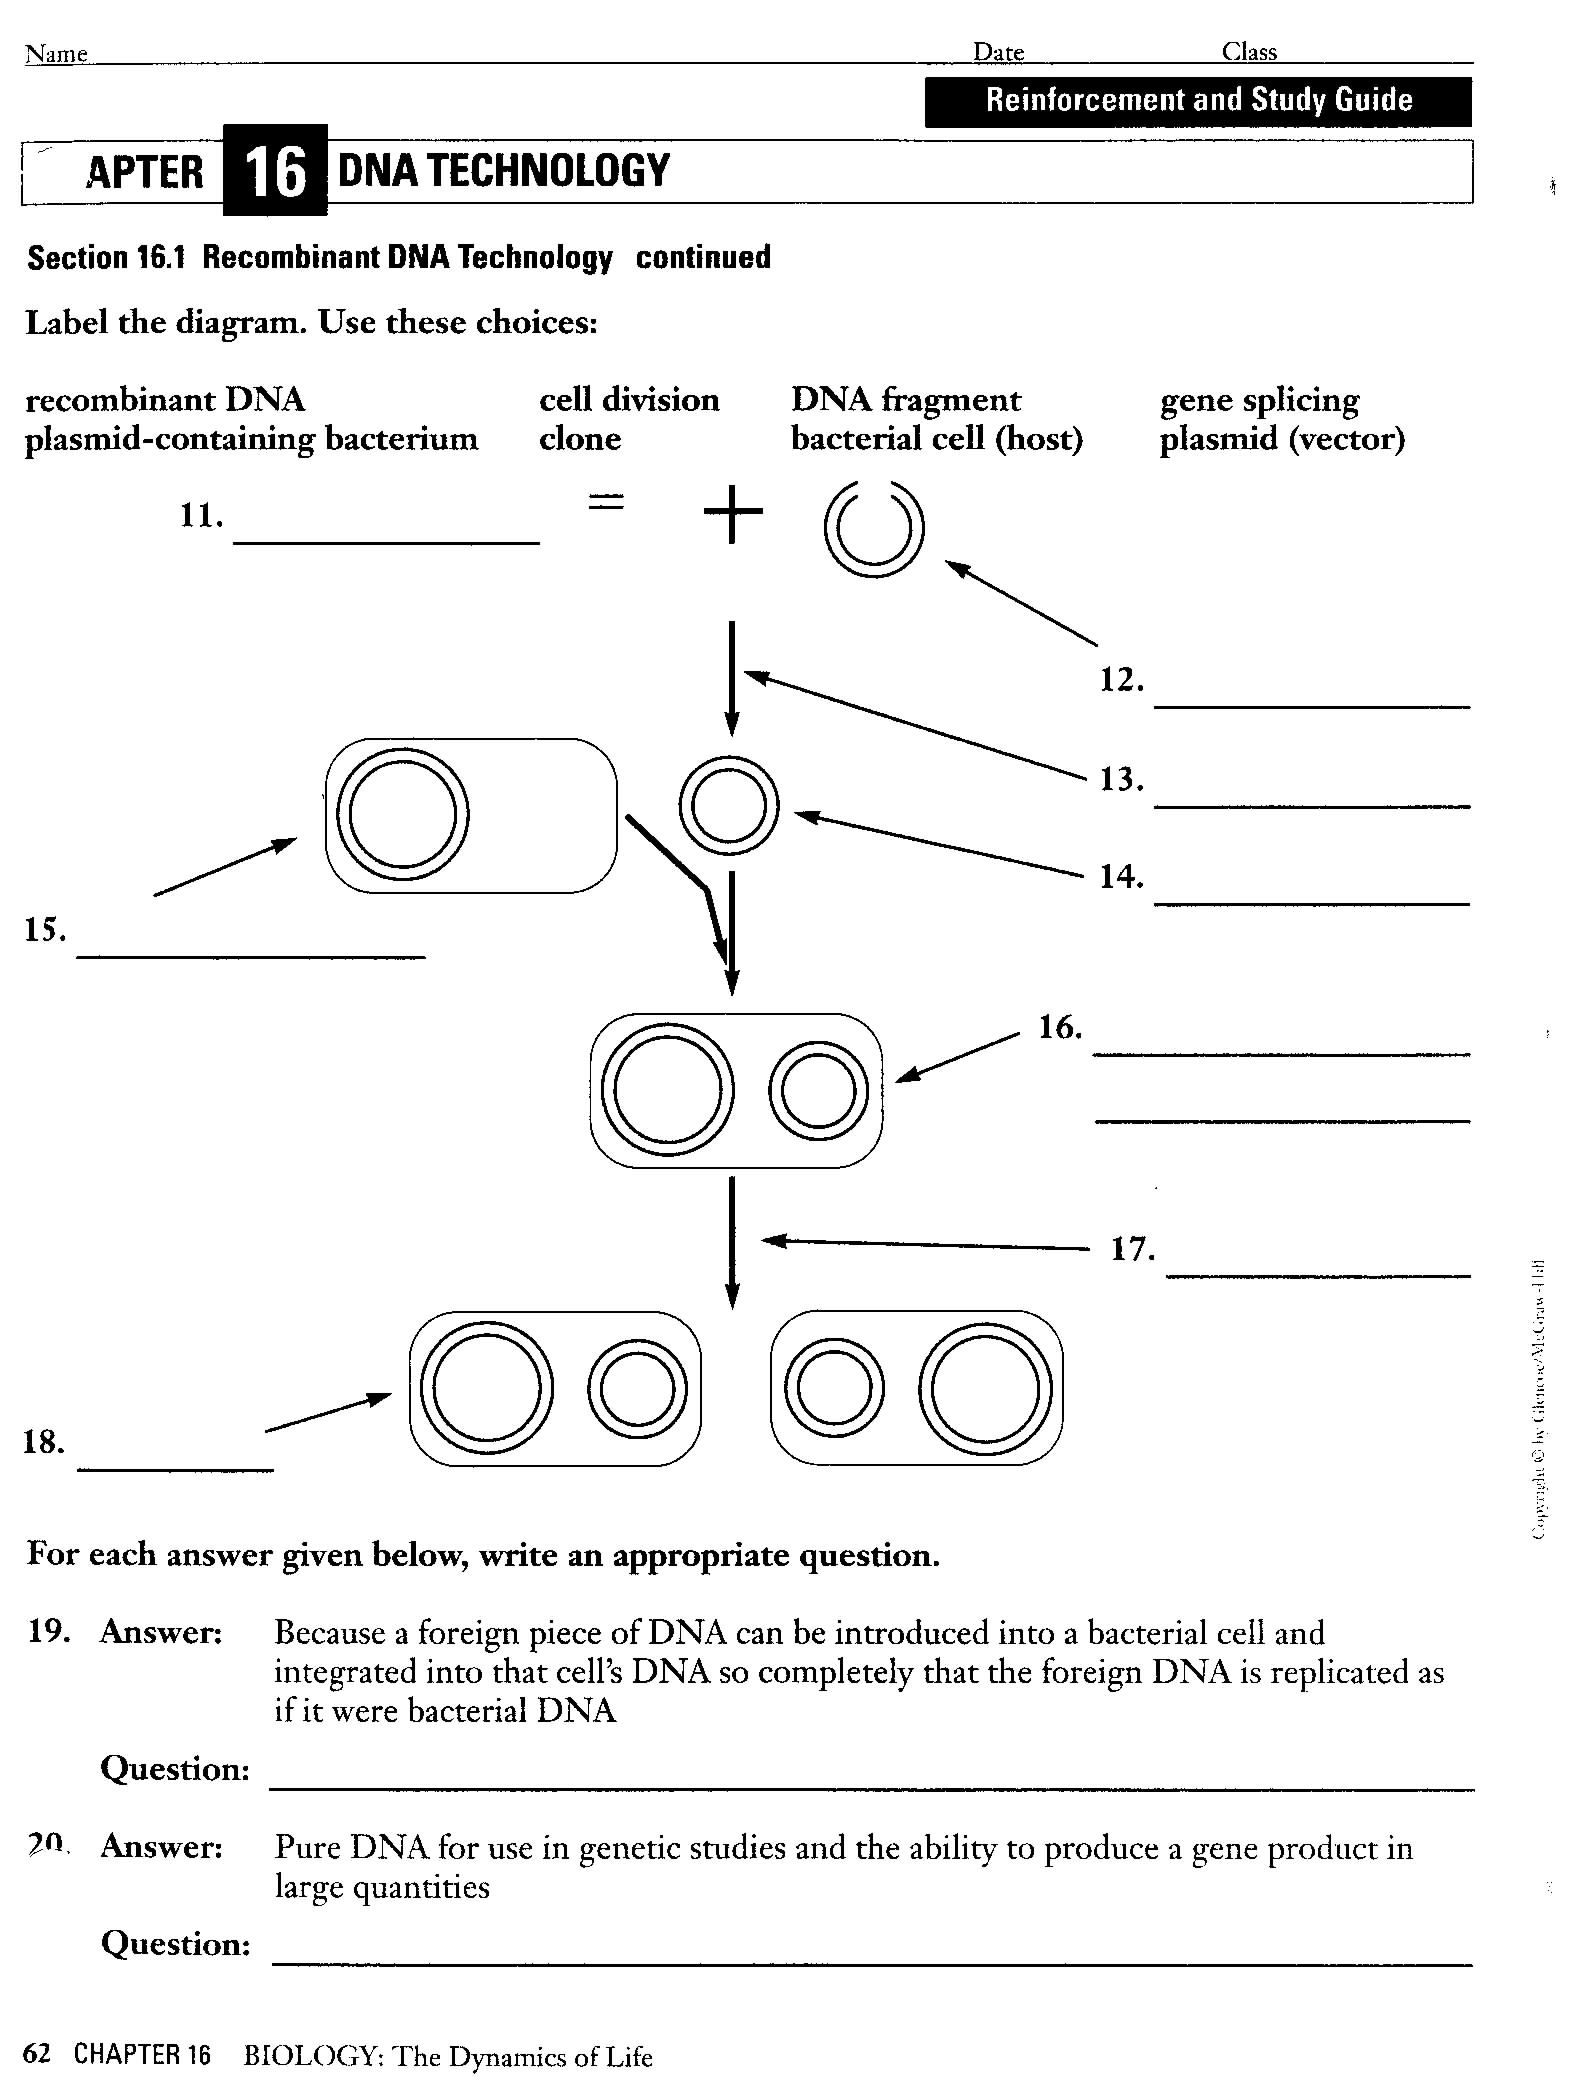 Restriction Enzyme Worksheet